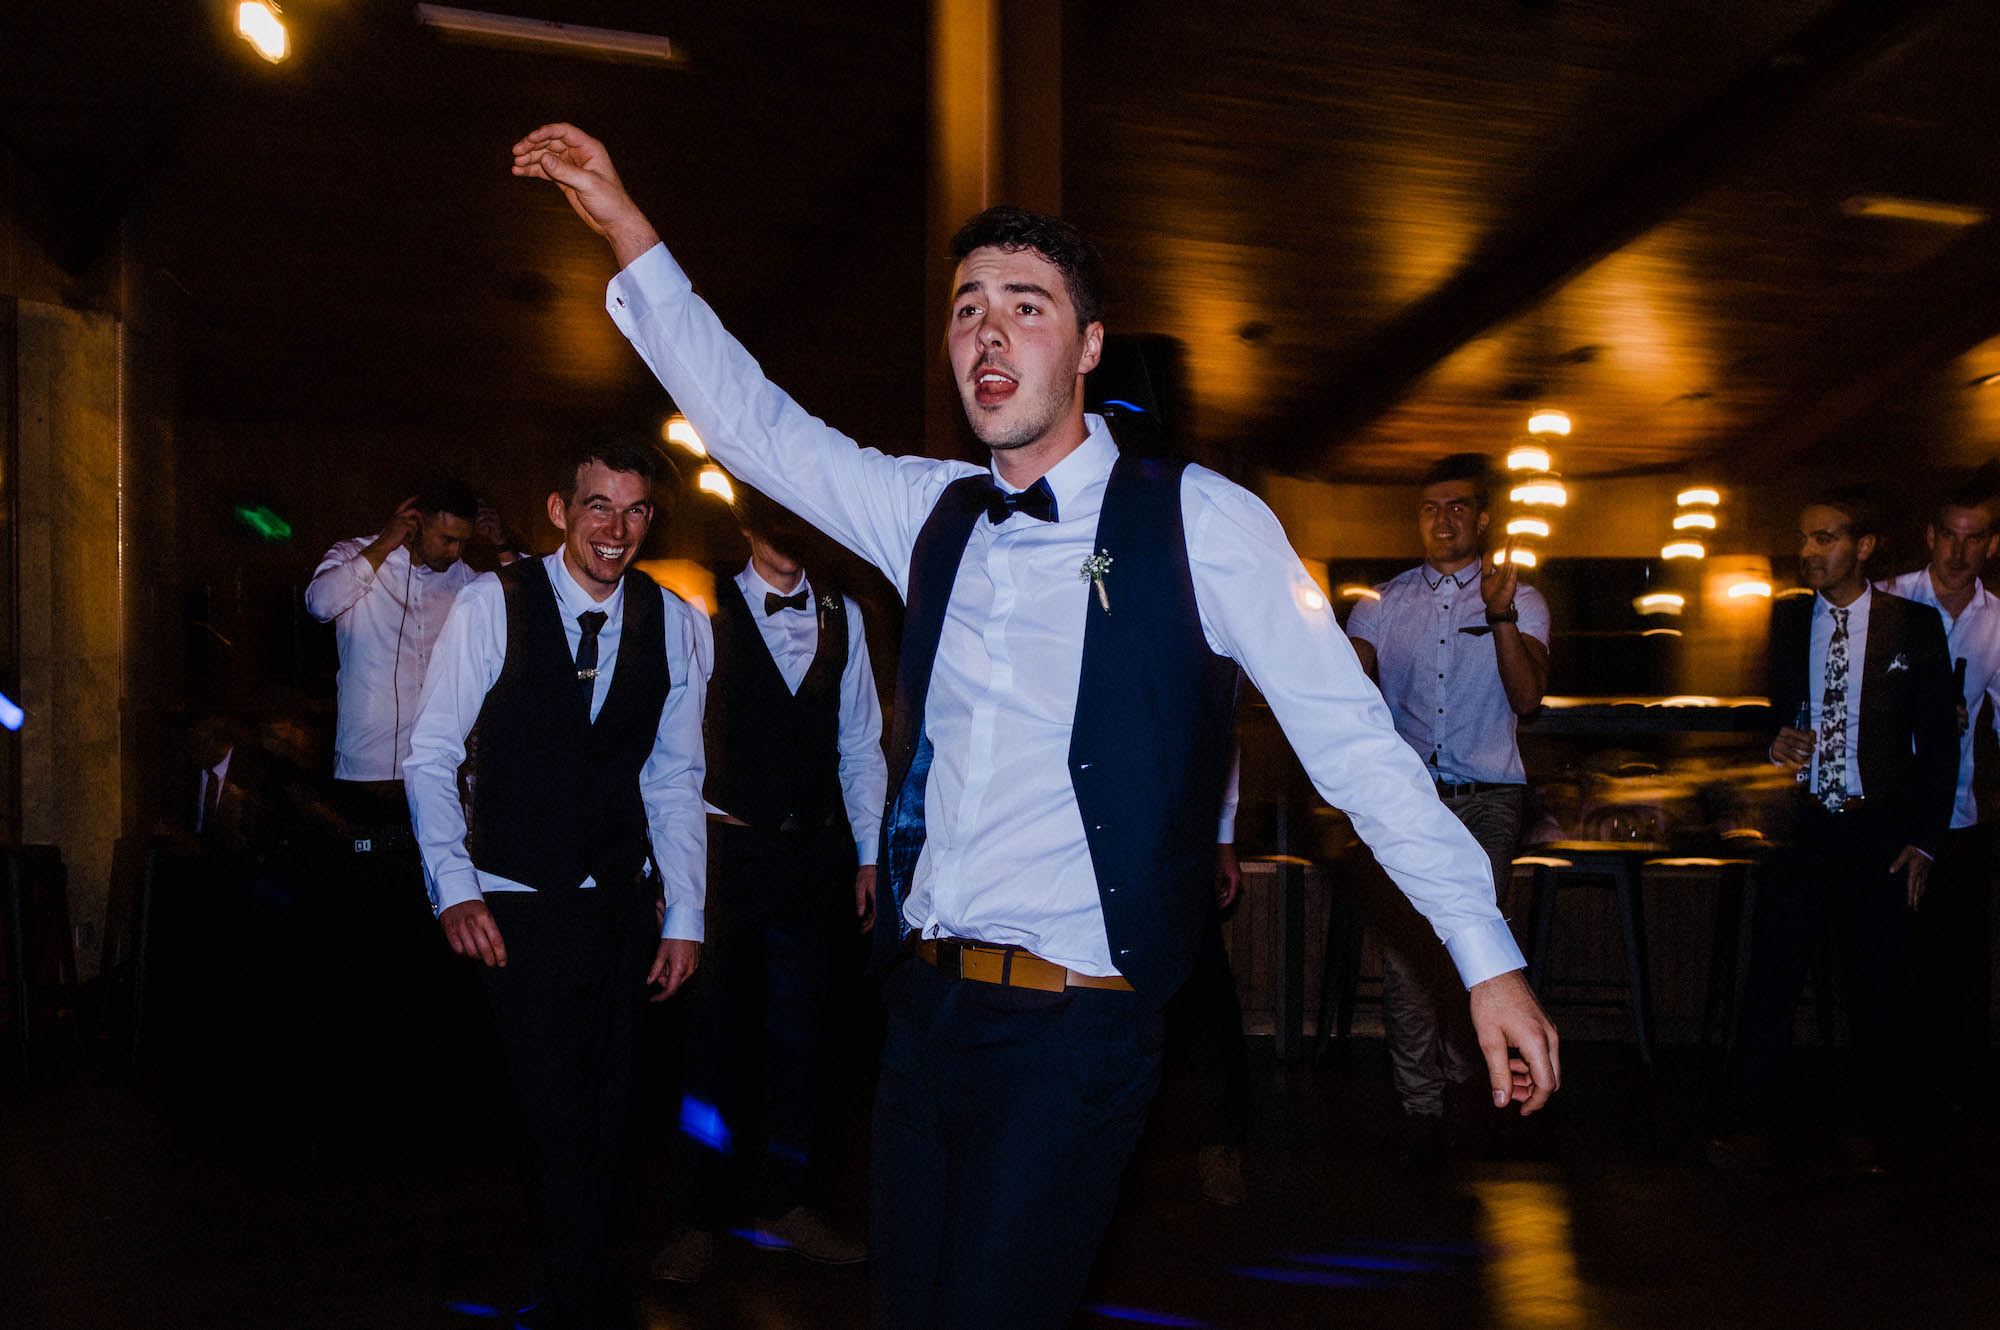 A groomsman dances at a Quarry Farm wedding reception.